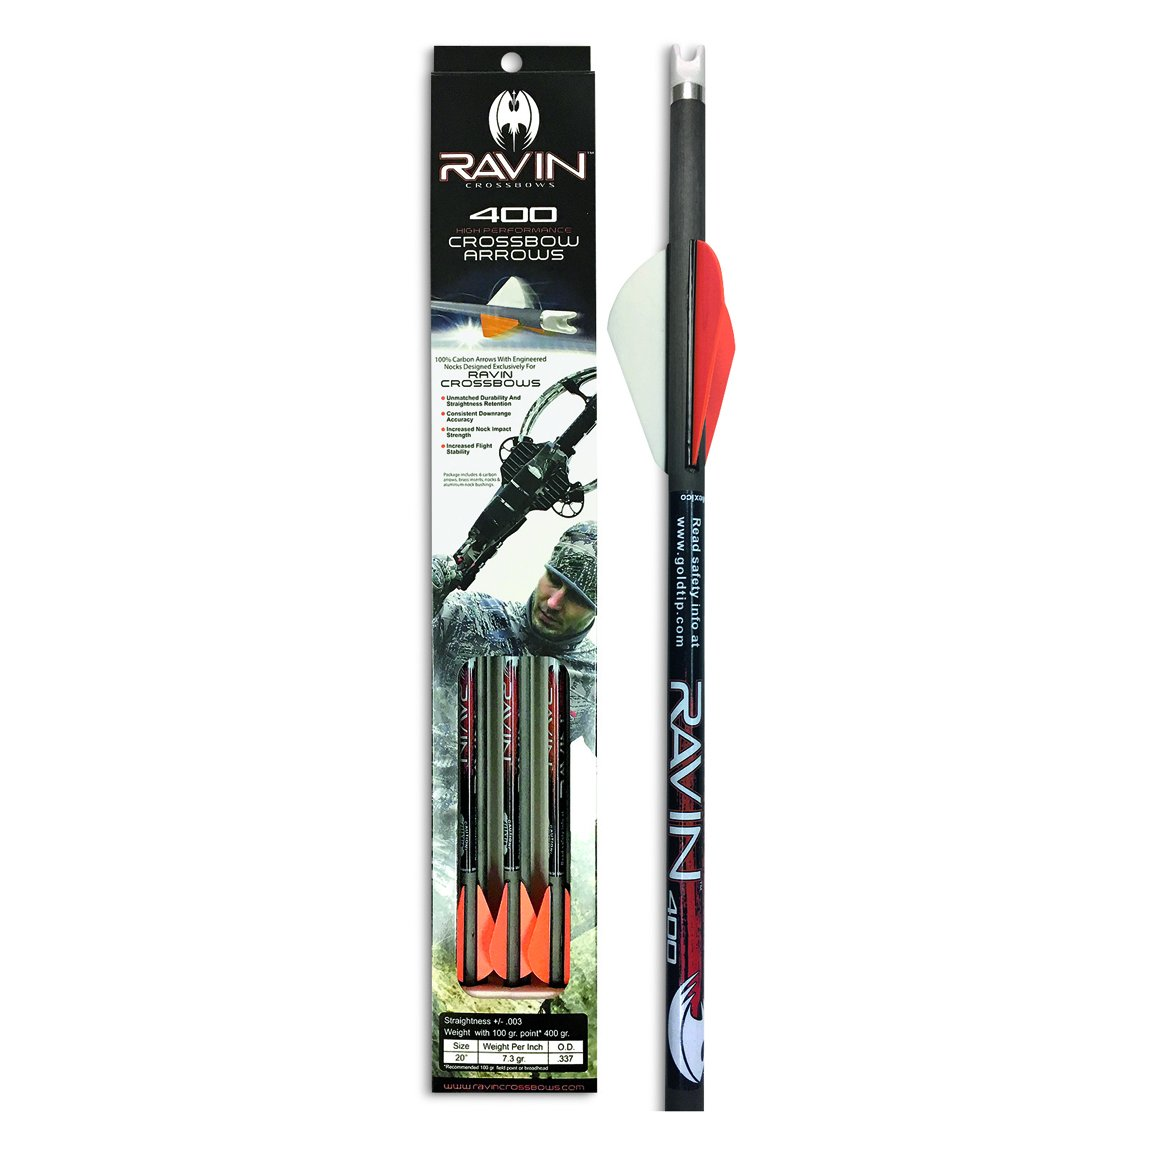 Ravin Carbon Arrows, 400 Grain, 6 Pack